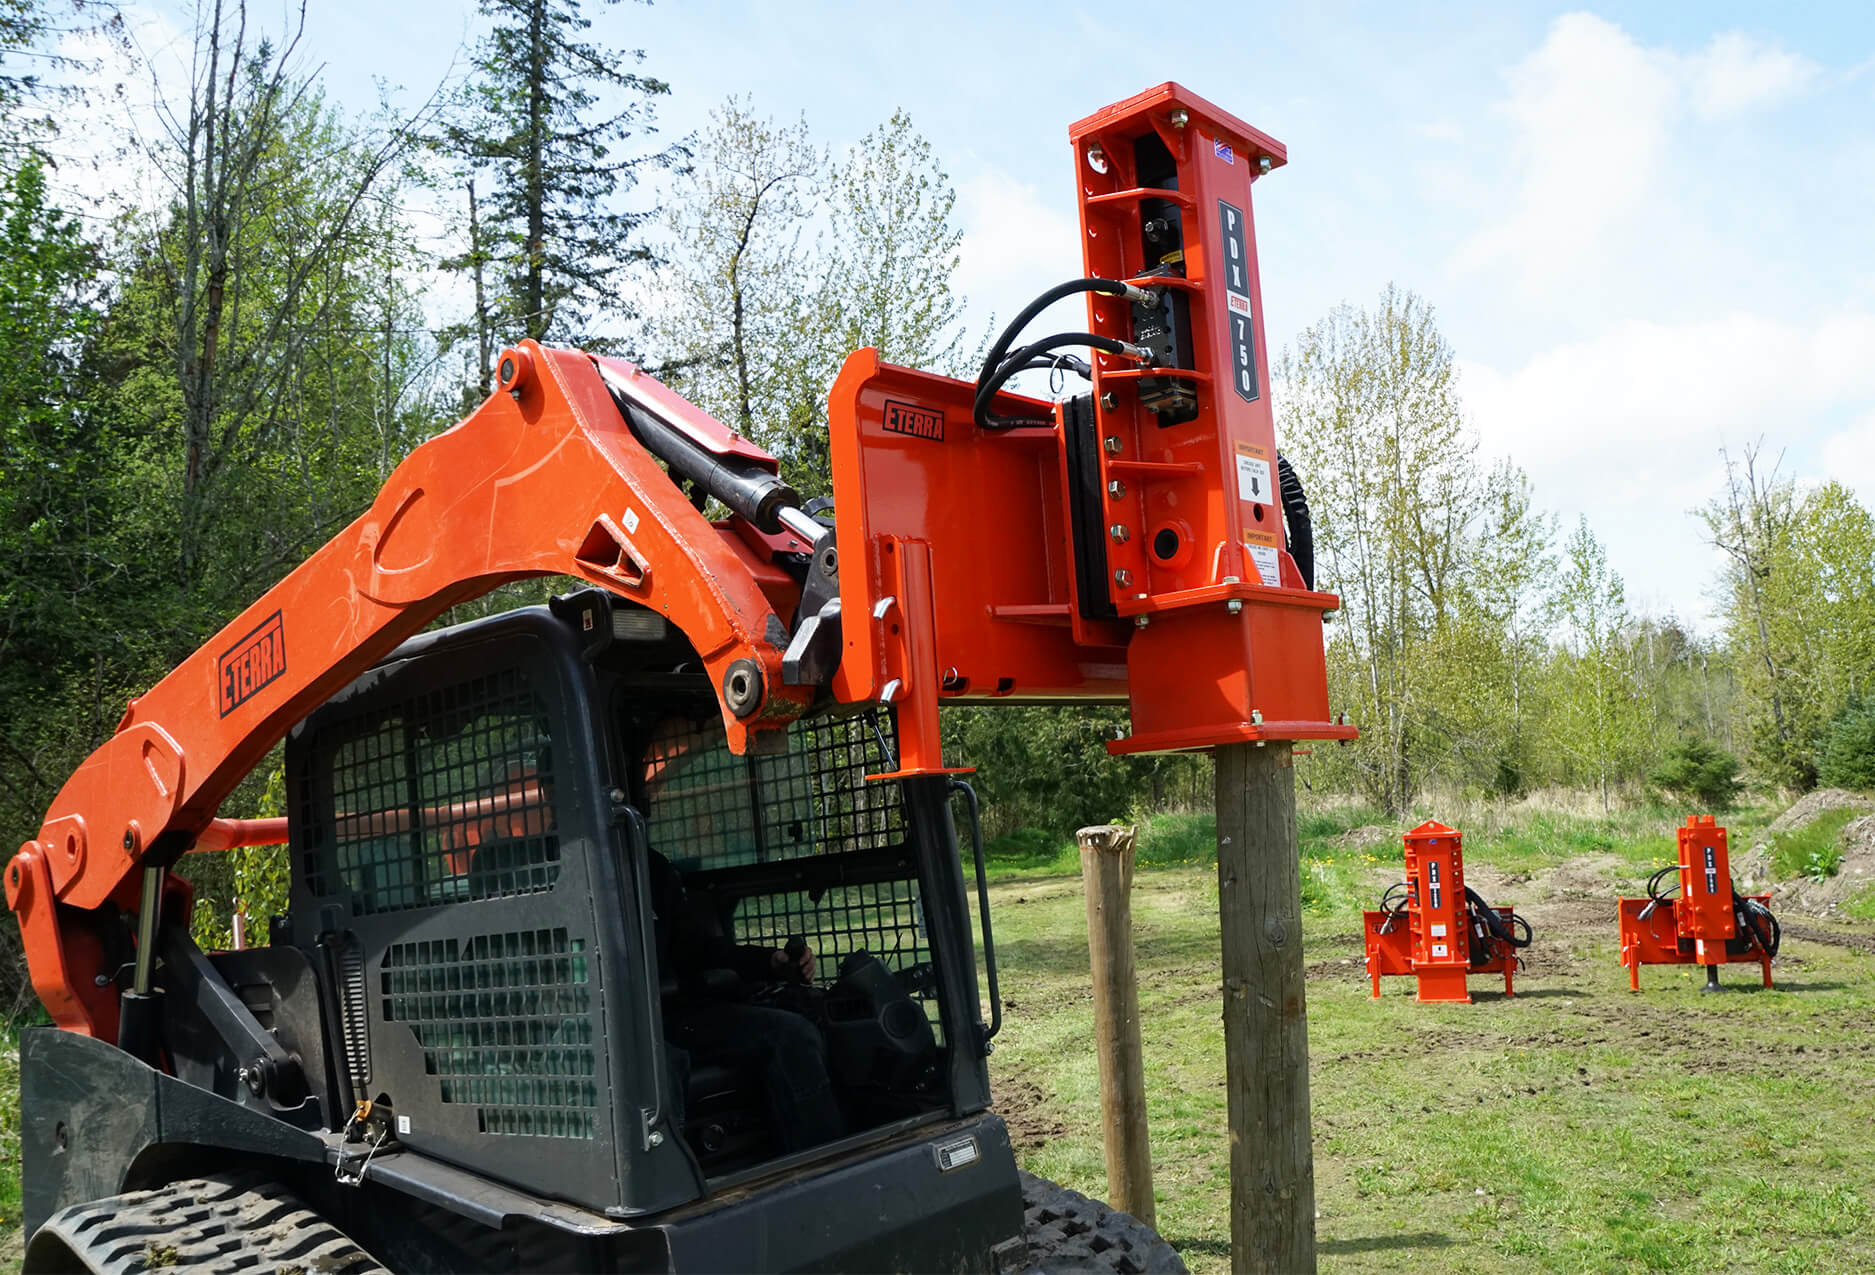 Eterra PDX-750 skid steer Post Driver Attachment side view